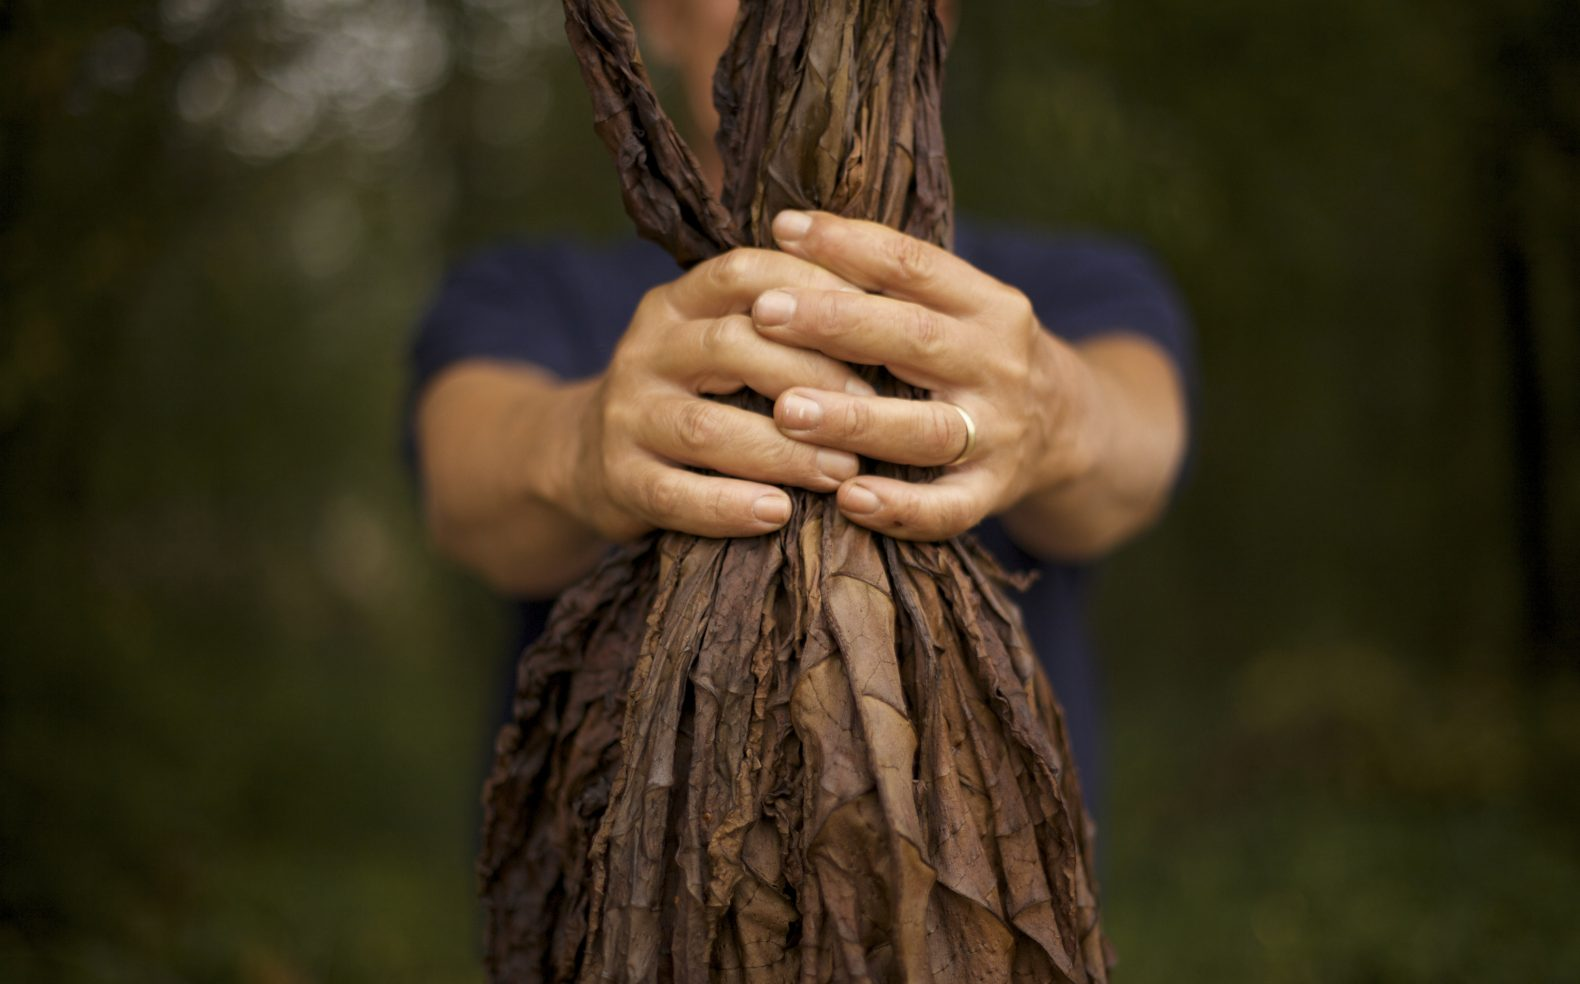 Male hands of a farmer clasped holding a bundle of dried, browned tobacco leafs.